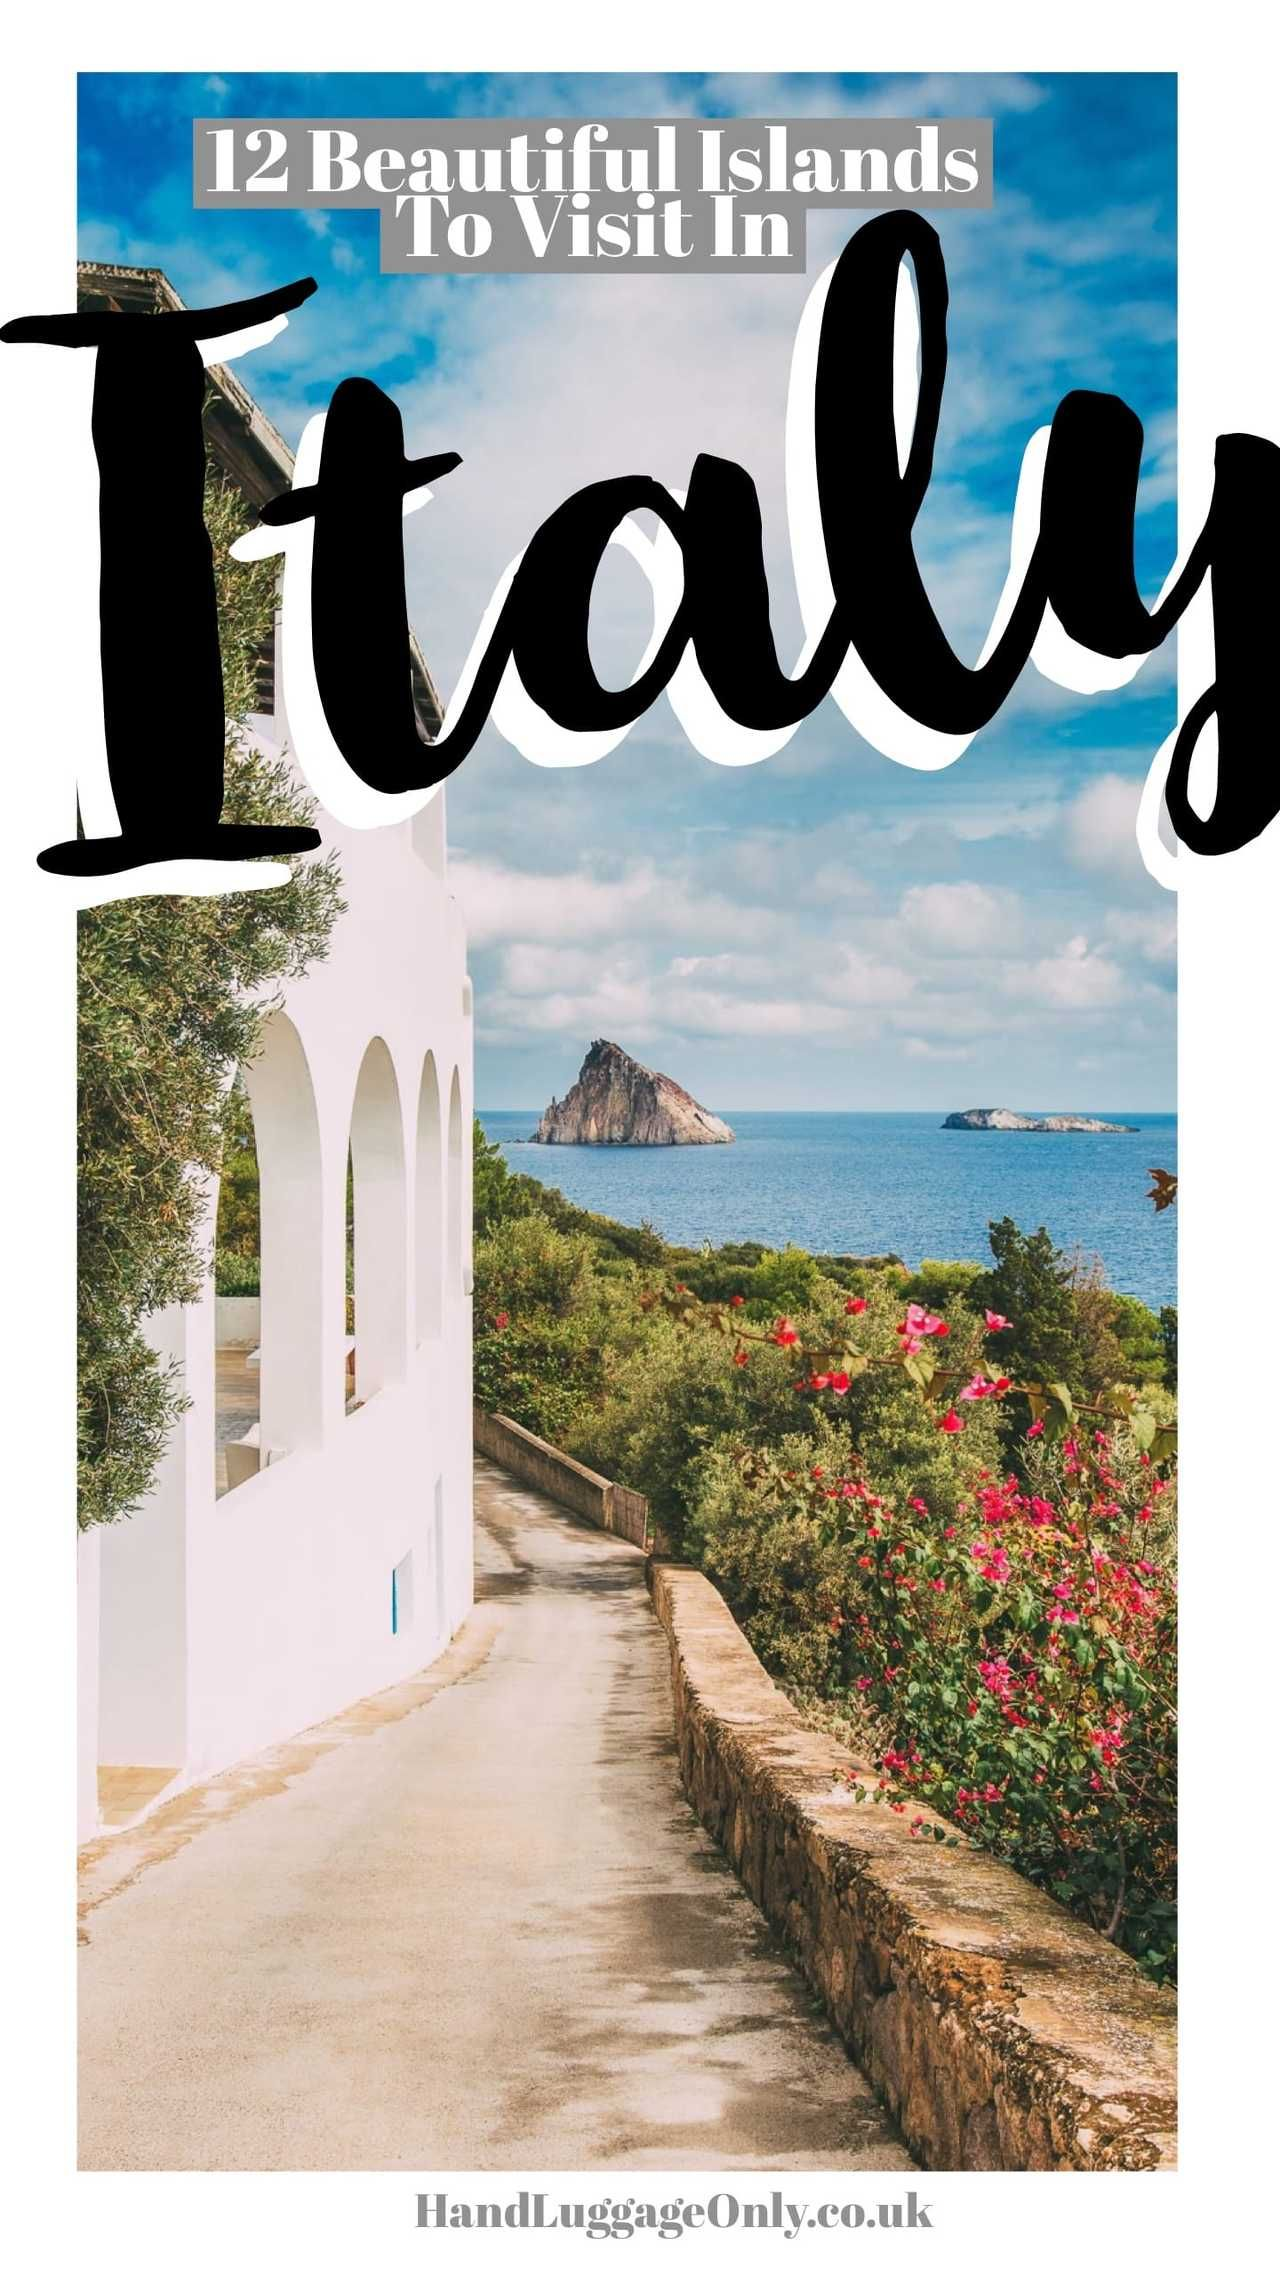 12 Of The Best Italian Islands You Have To Visit - https://handluggageonly.co.uk/2018/01/27/12-best-italian-islands-visit/